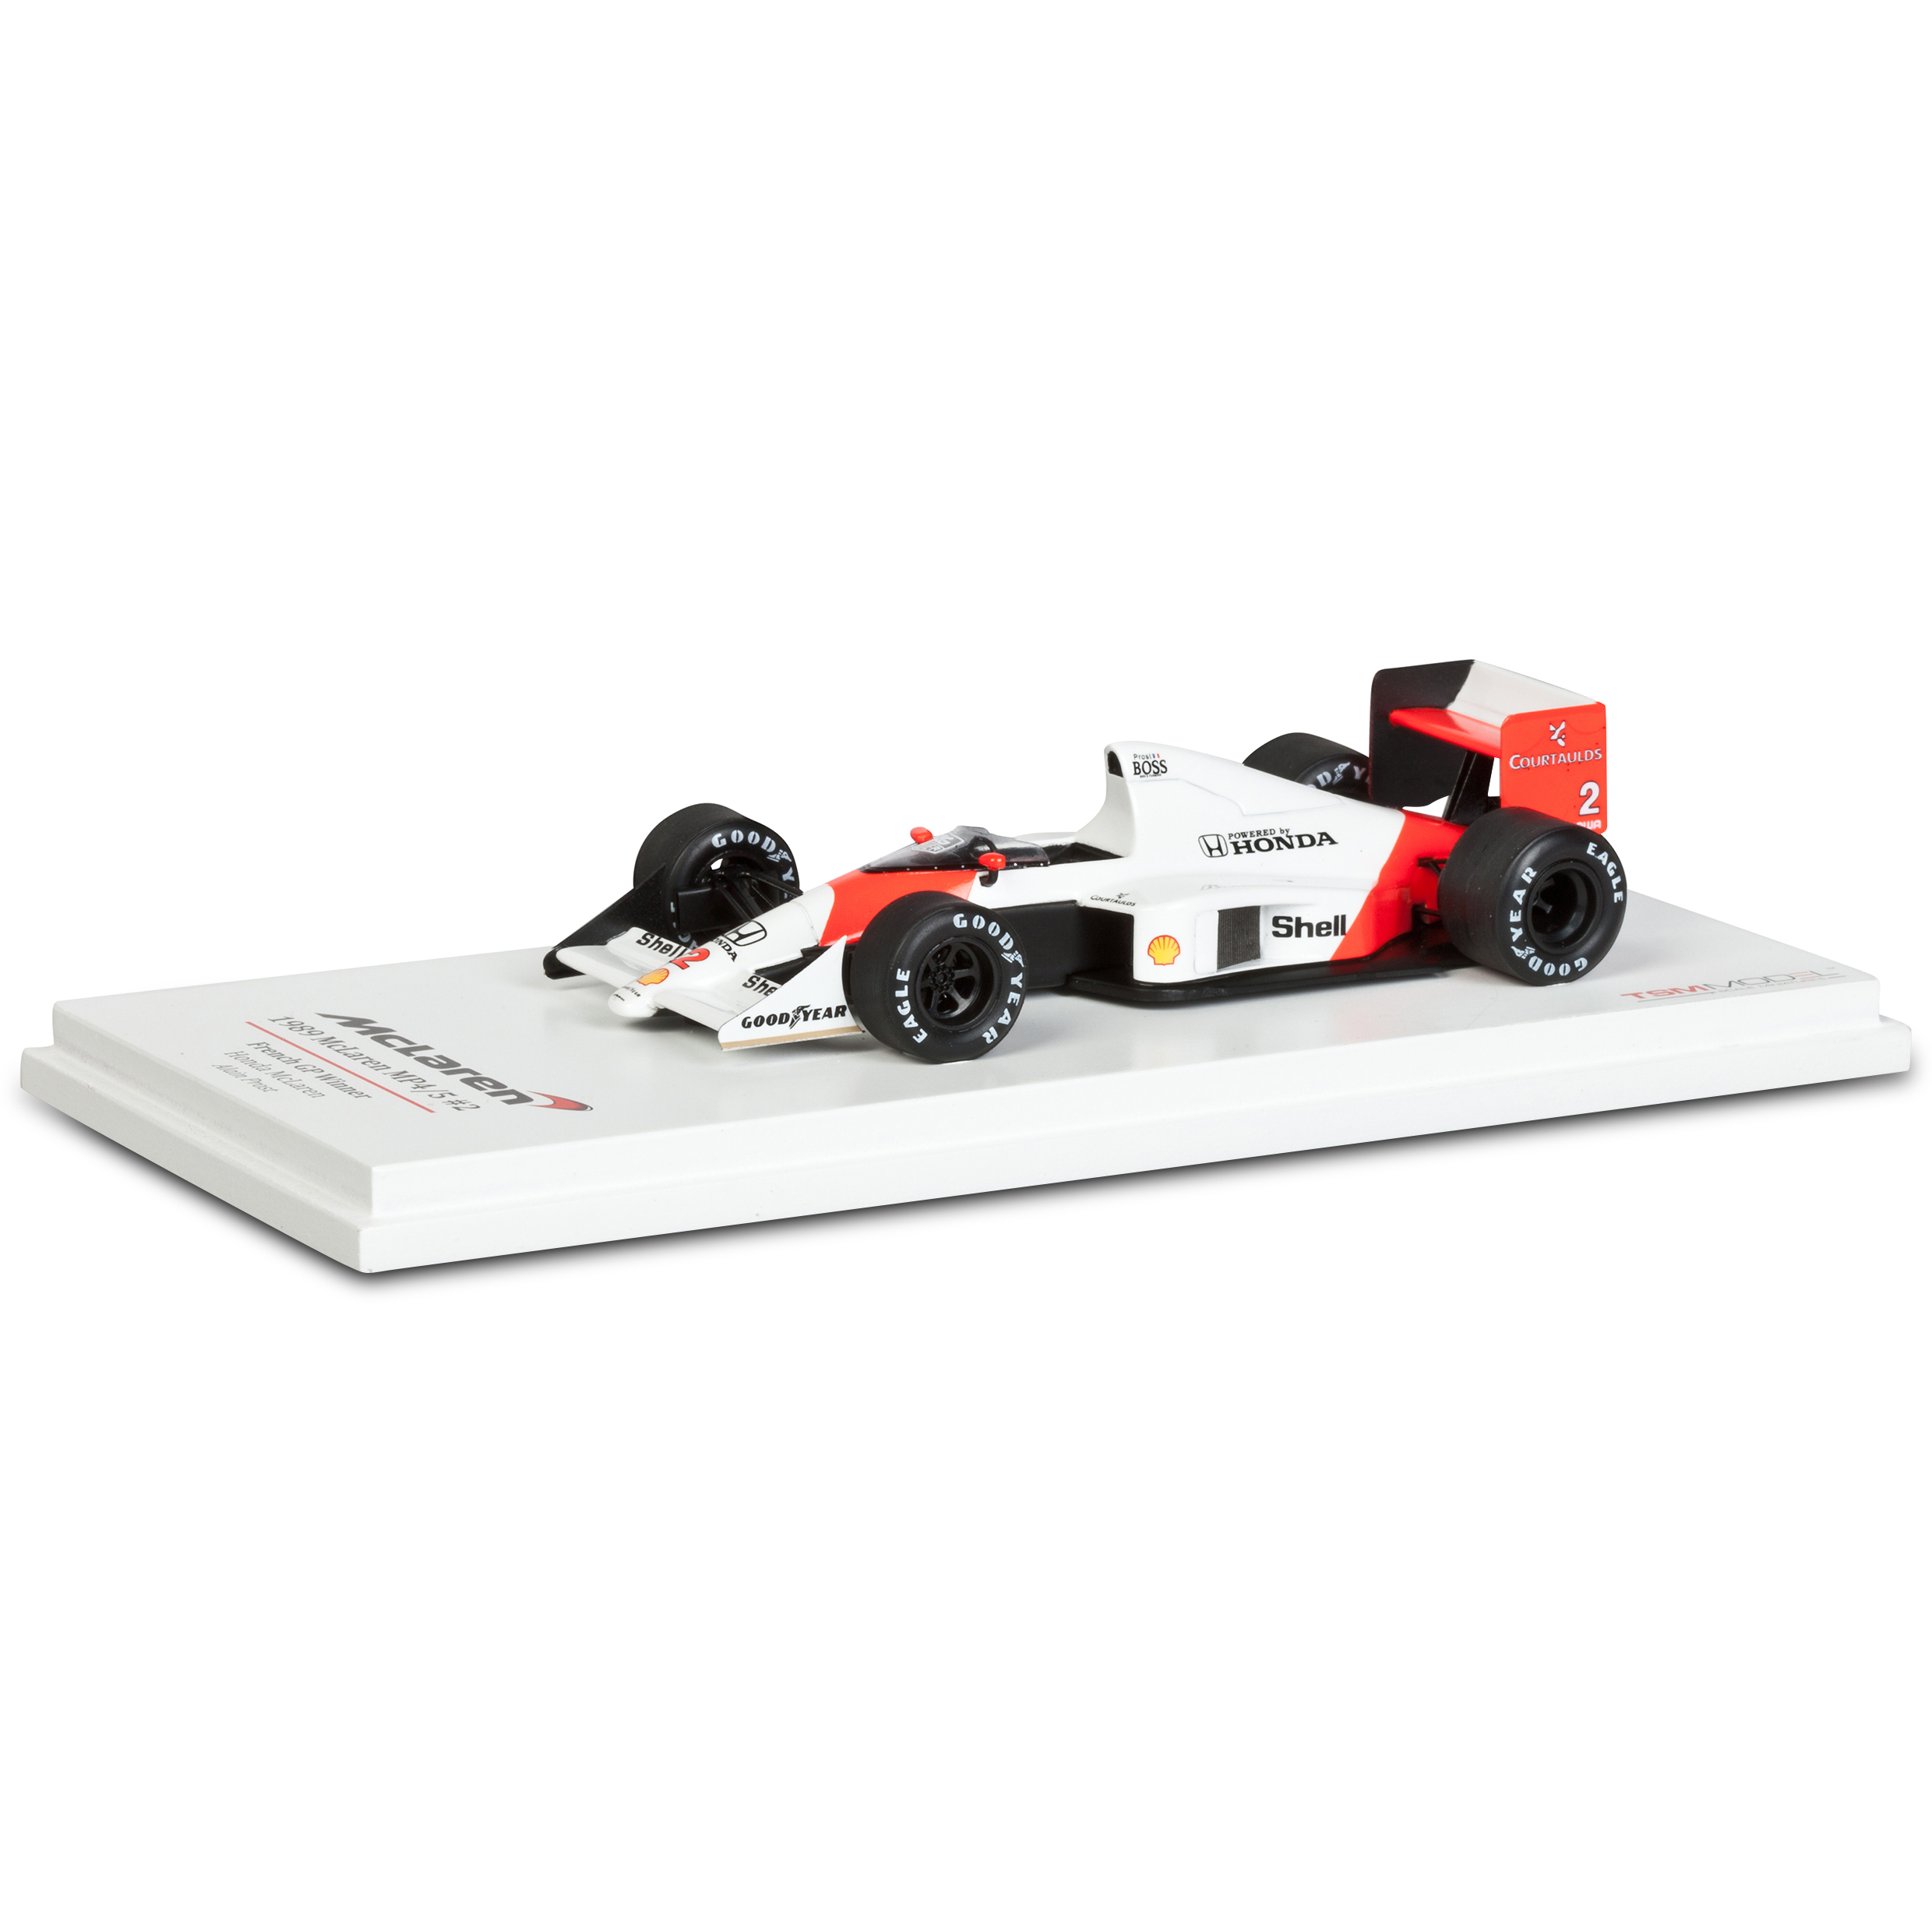 McLaren MP4/5 1989 French GP 1st Place No.2 - A. Prost 1:43 Scale